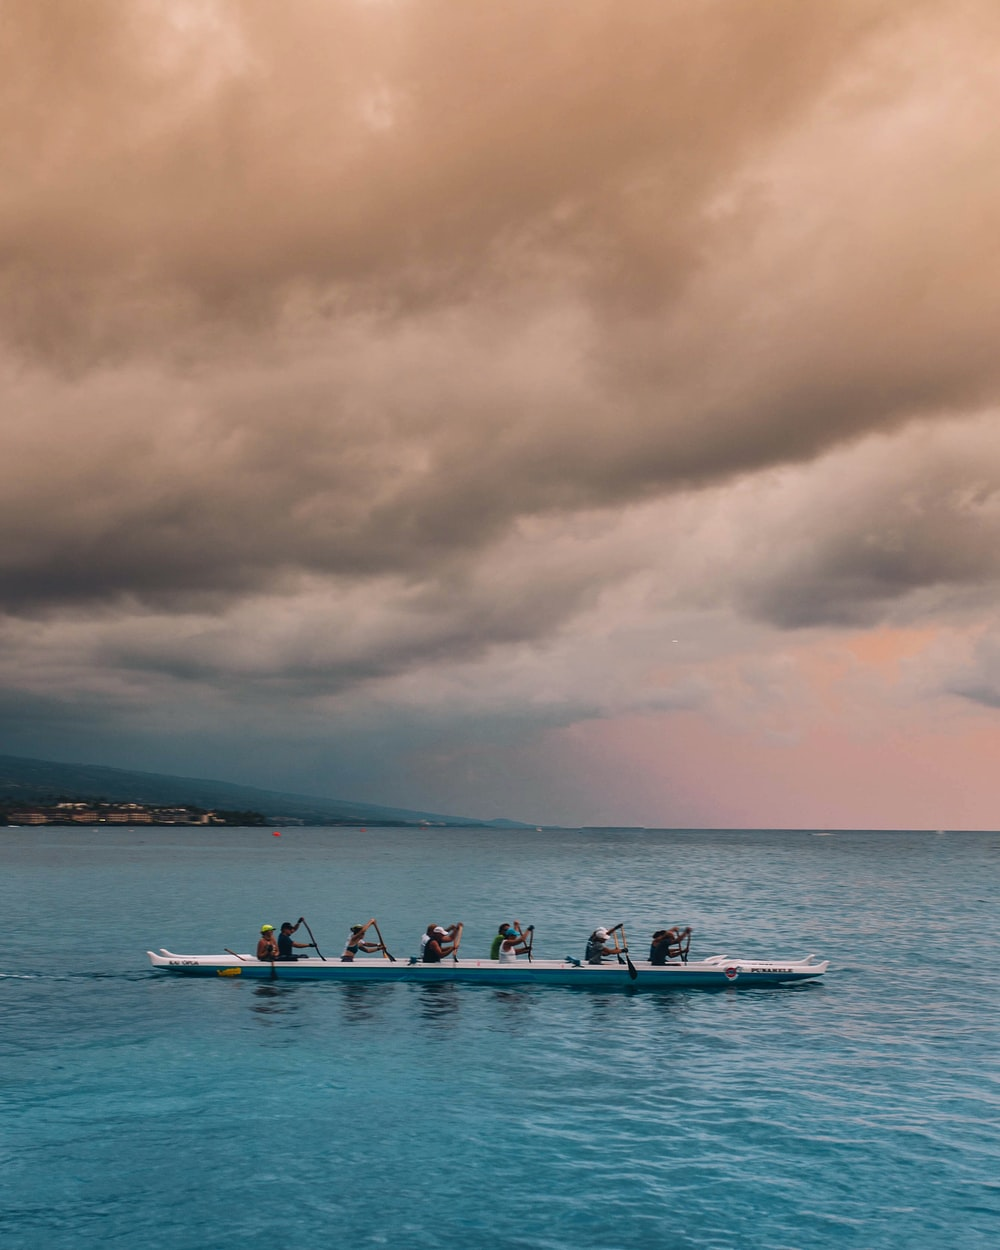 people on white and blue boat paddling under gray clouds during daytime